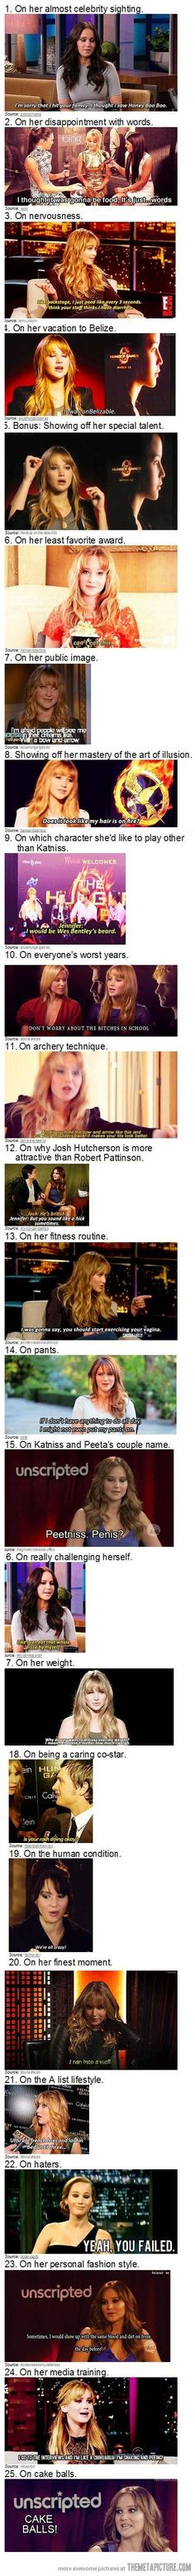 Jennifer Lawrence's brilliance… In addition to her talent, this is why I really like her.